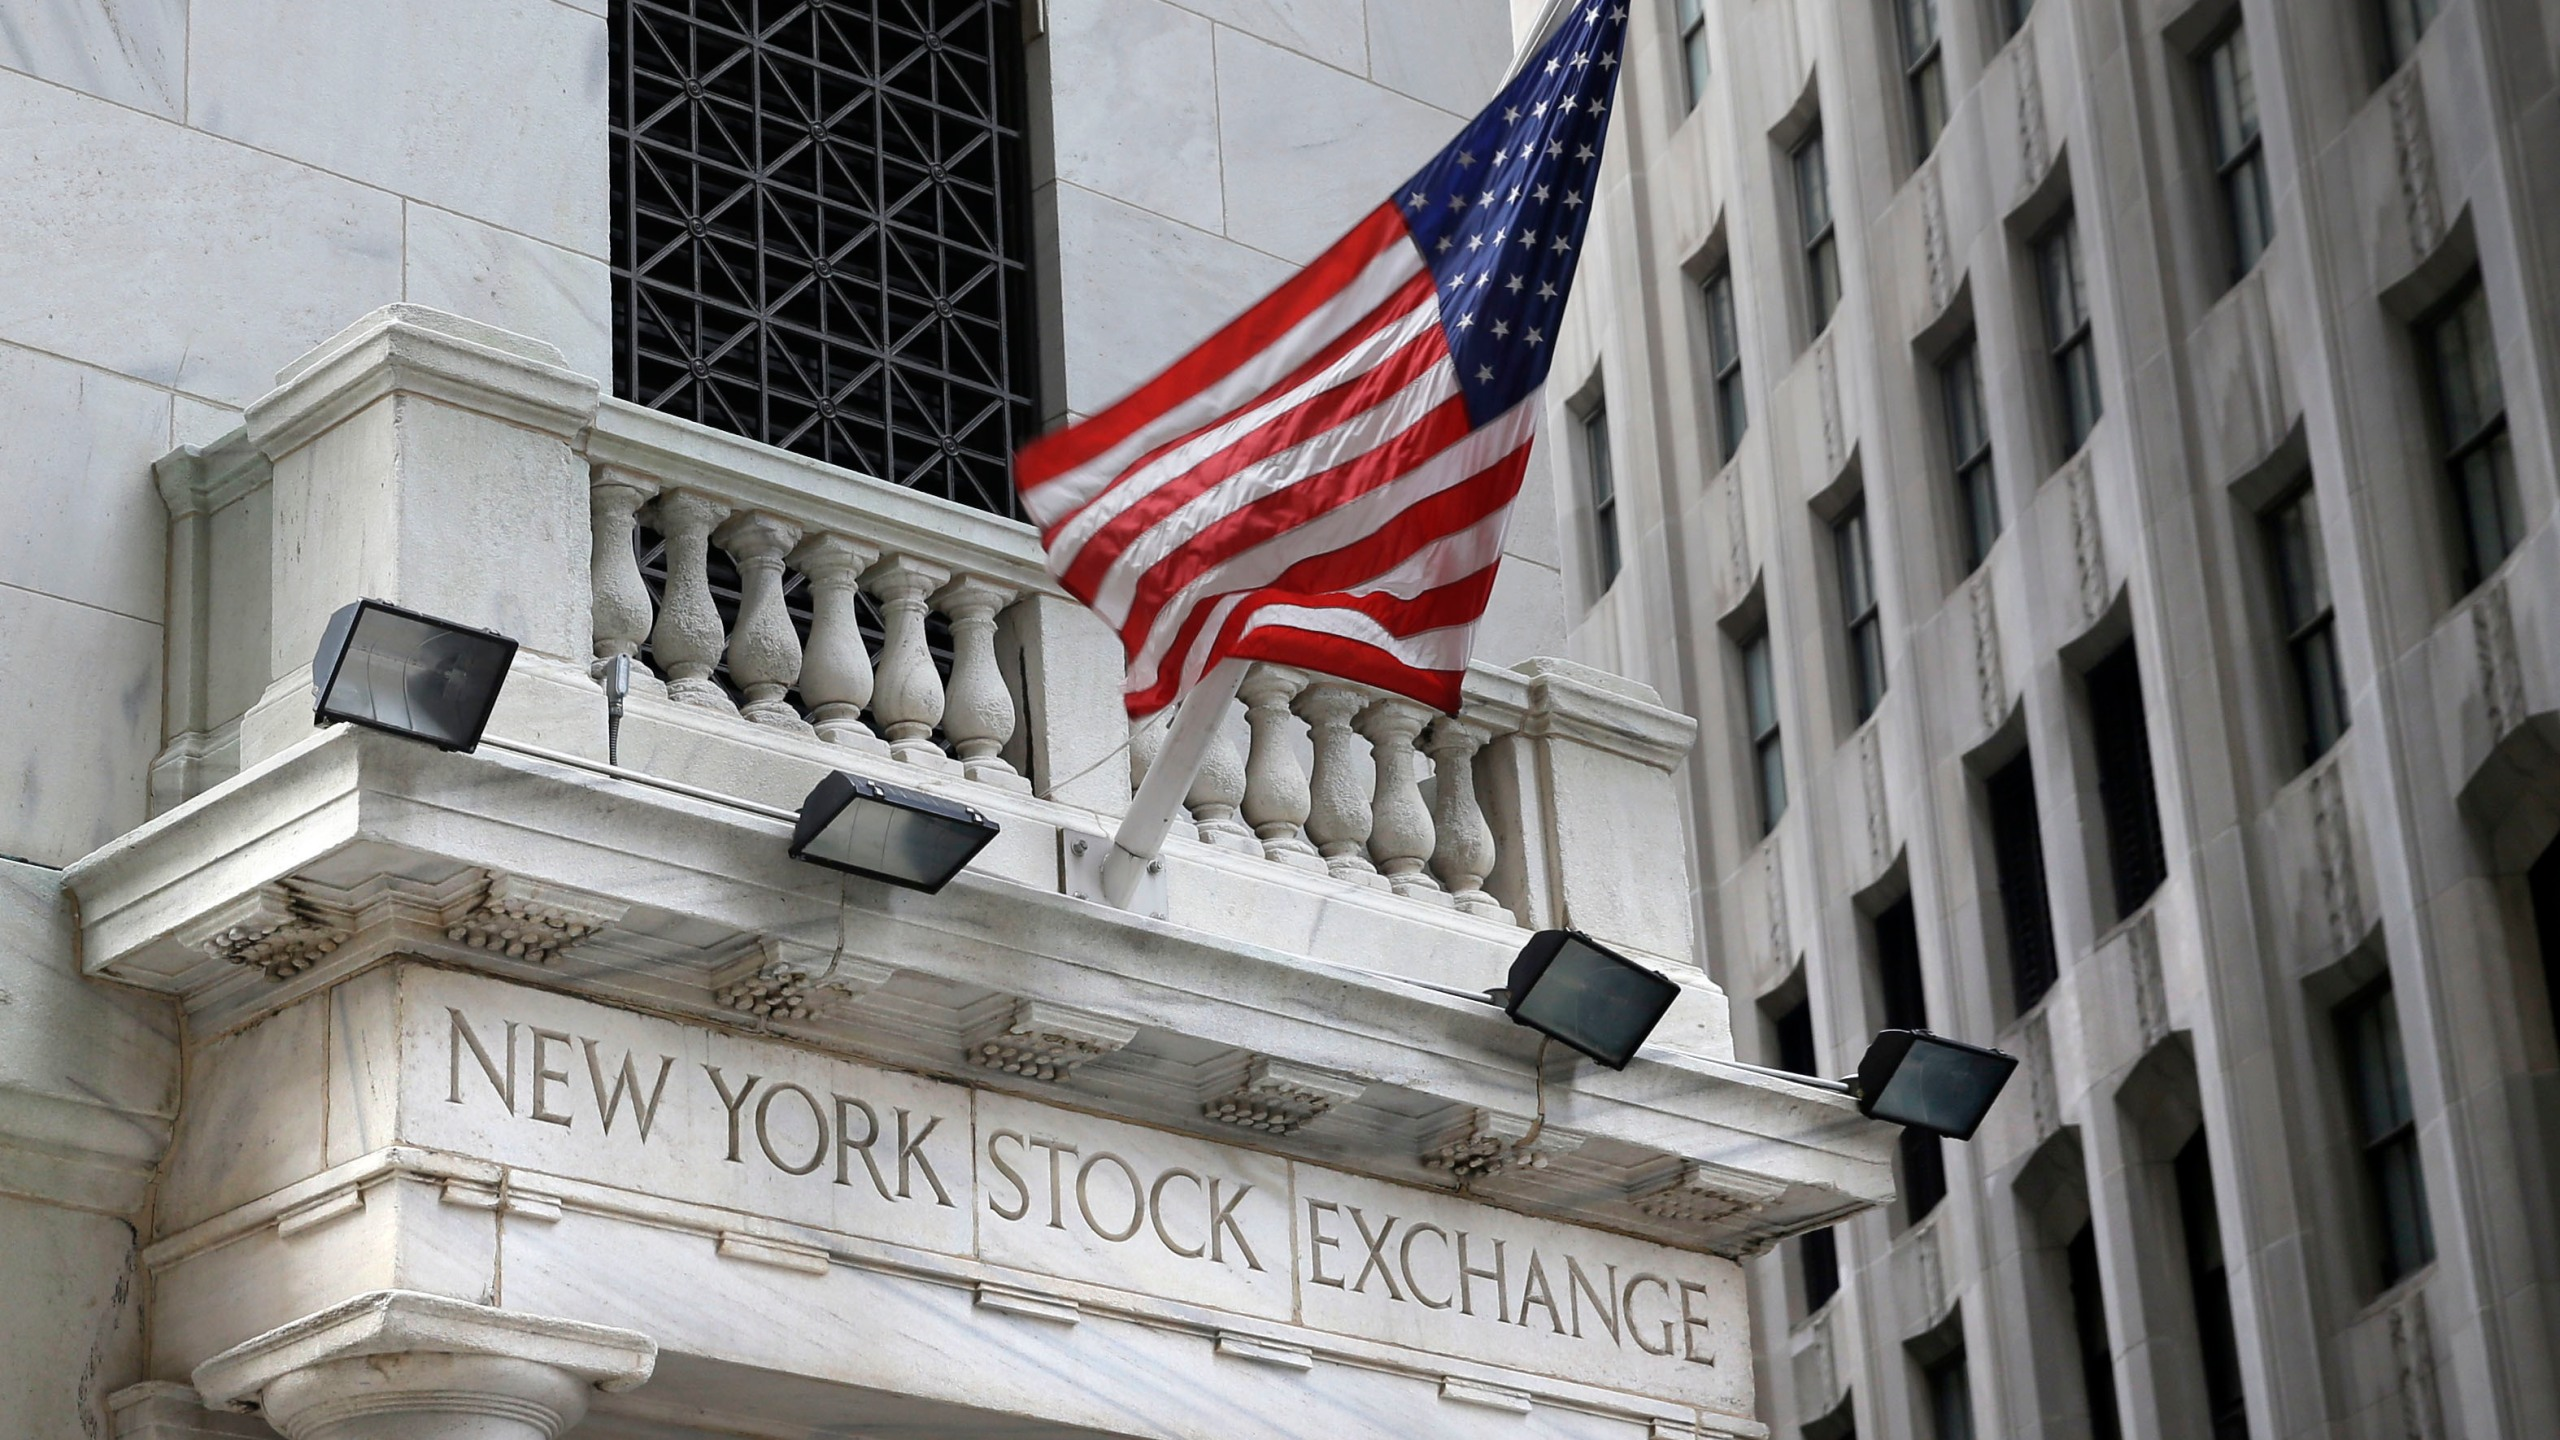 Financial_Markets_Wall_Street_09948-159532.jpg99658603